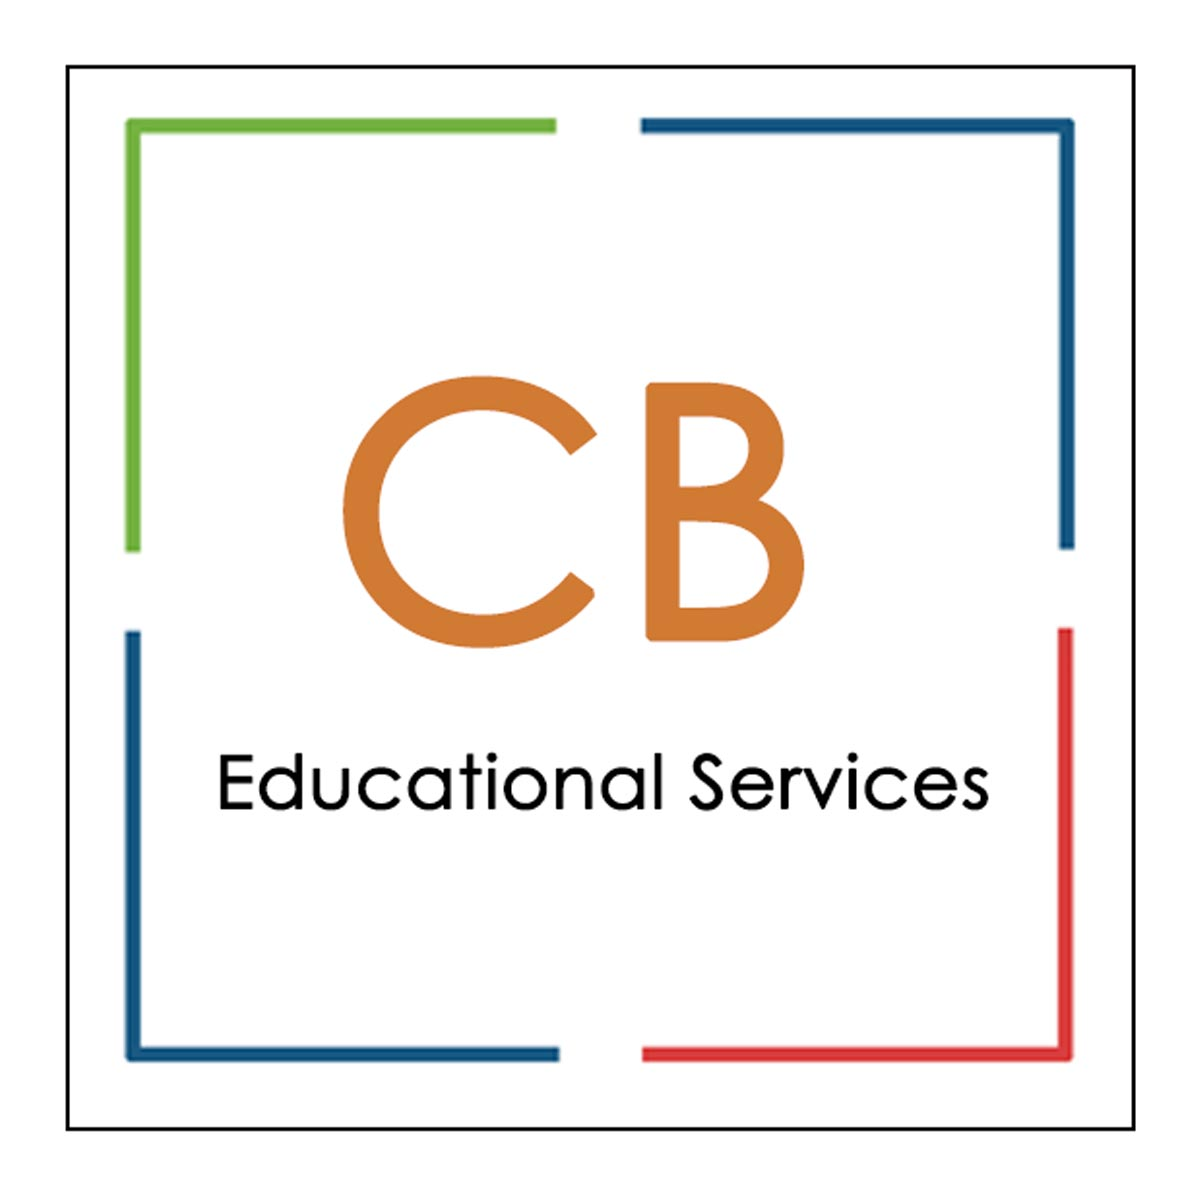 CB Educational Services